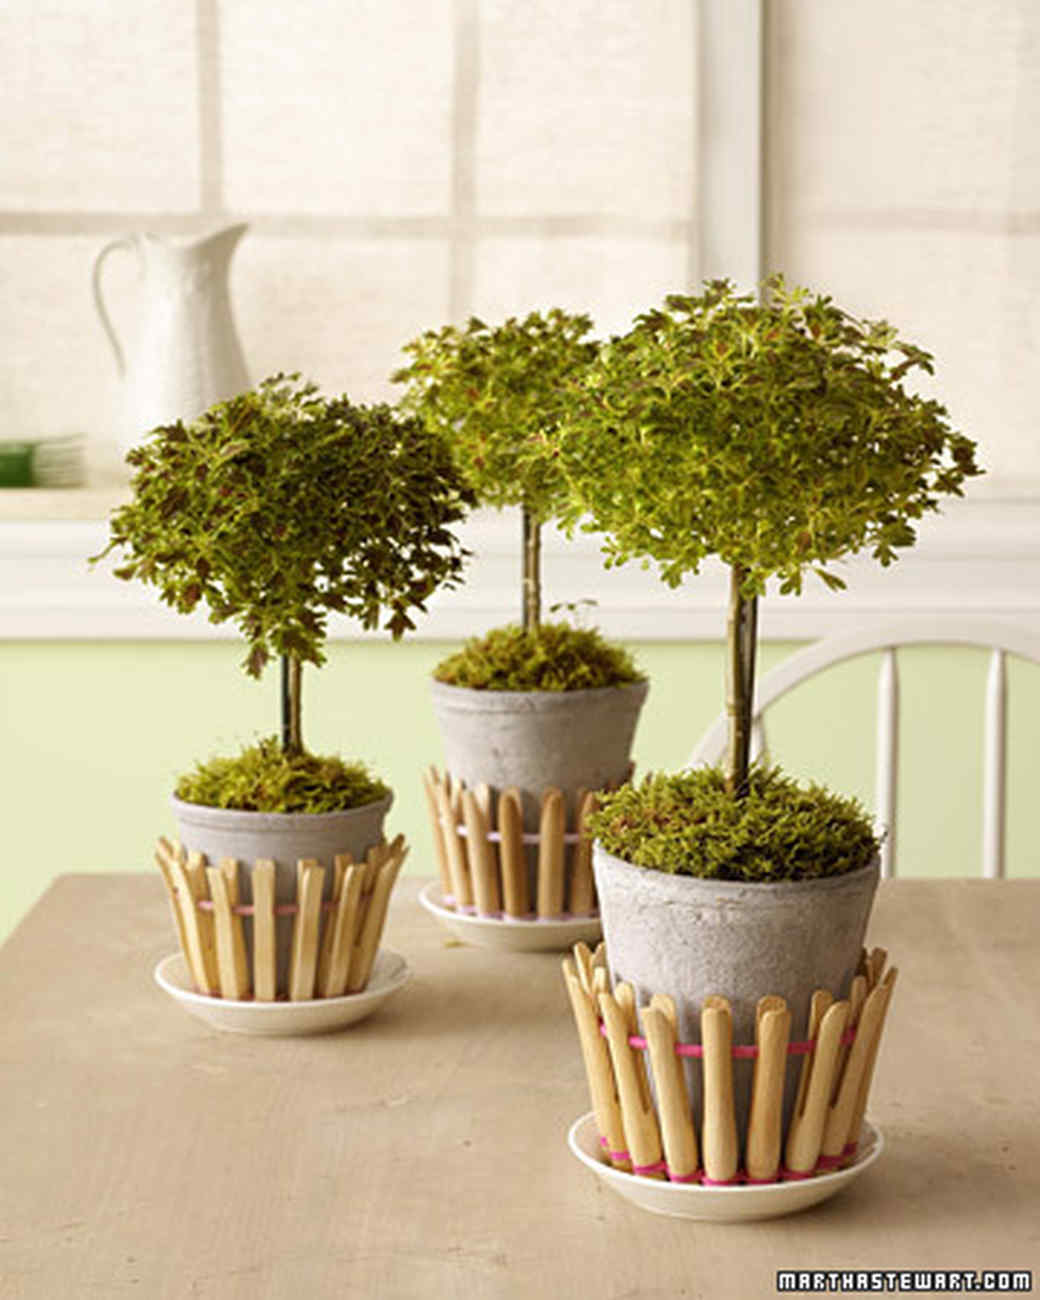 Decorative Flowerpots and Planters | Martha Stewart